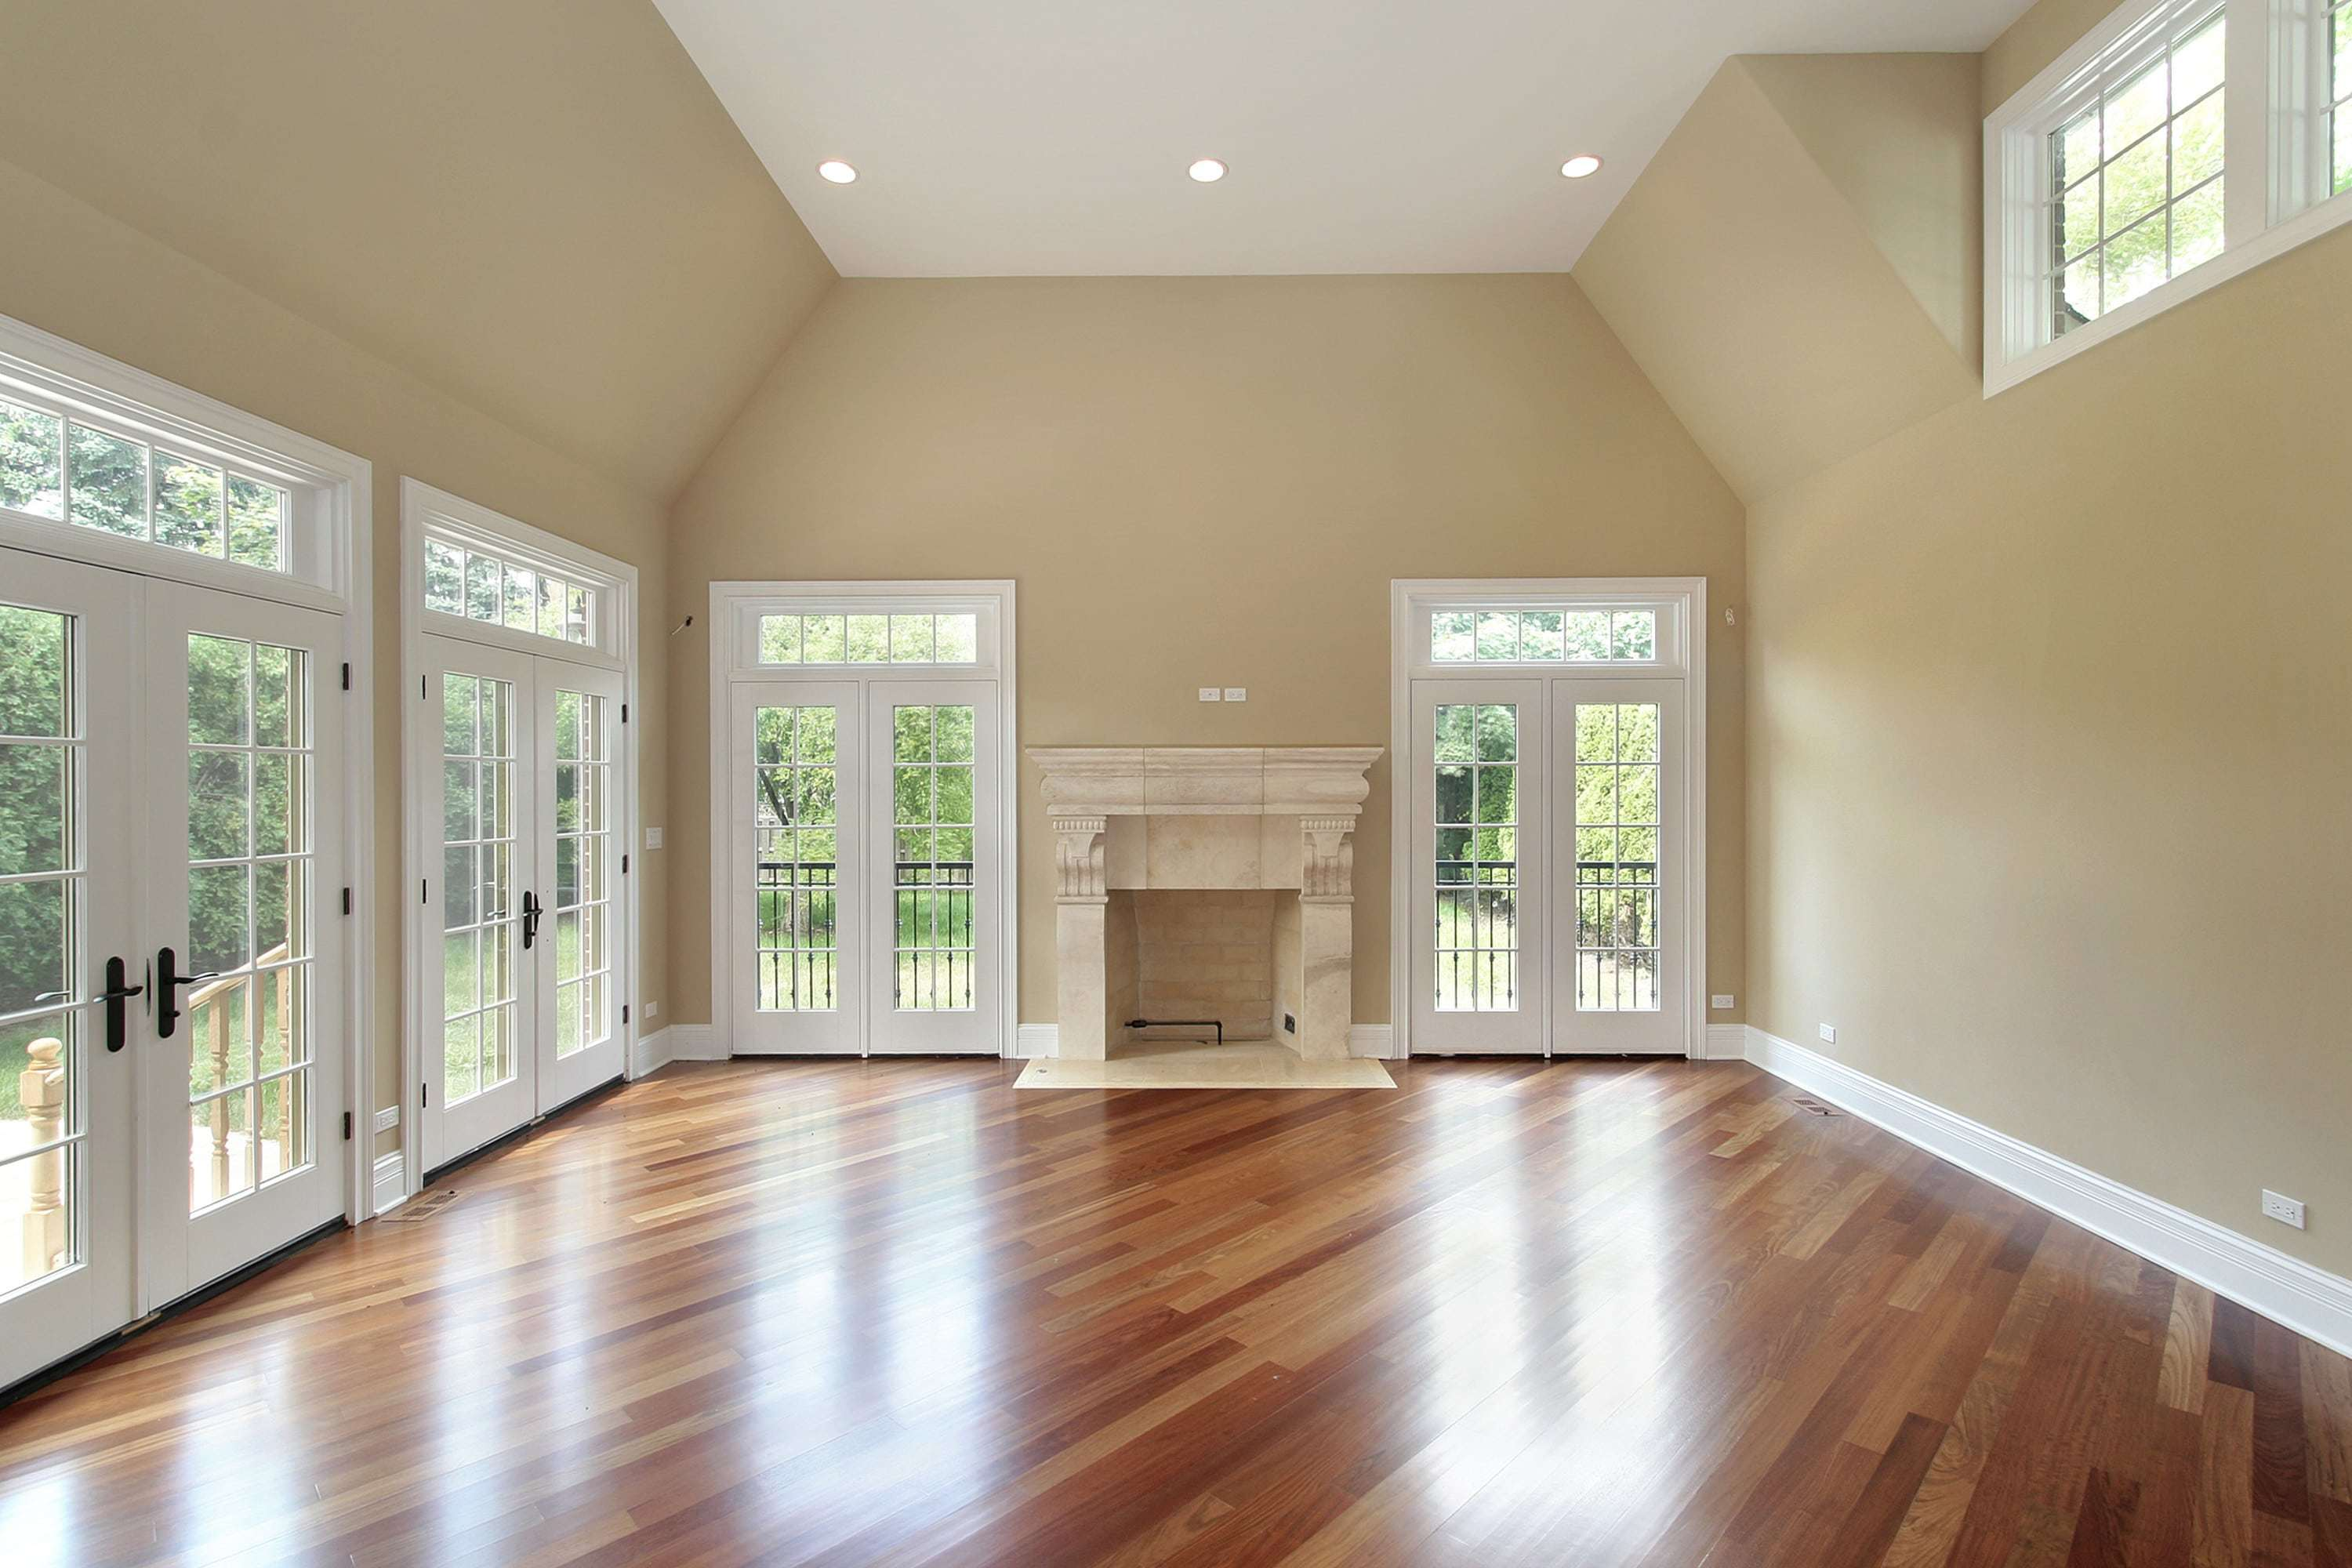 Nj family room addition facts bergen county contractors for Family room addition pictures